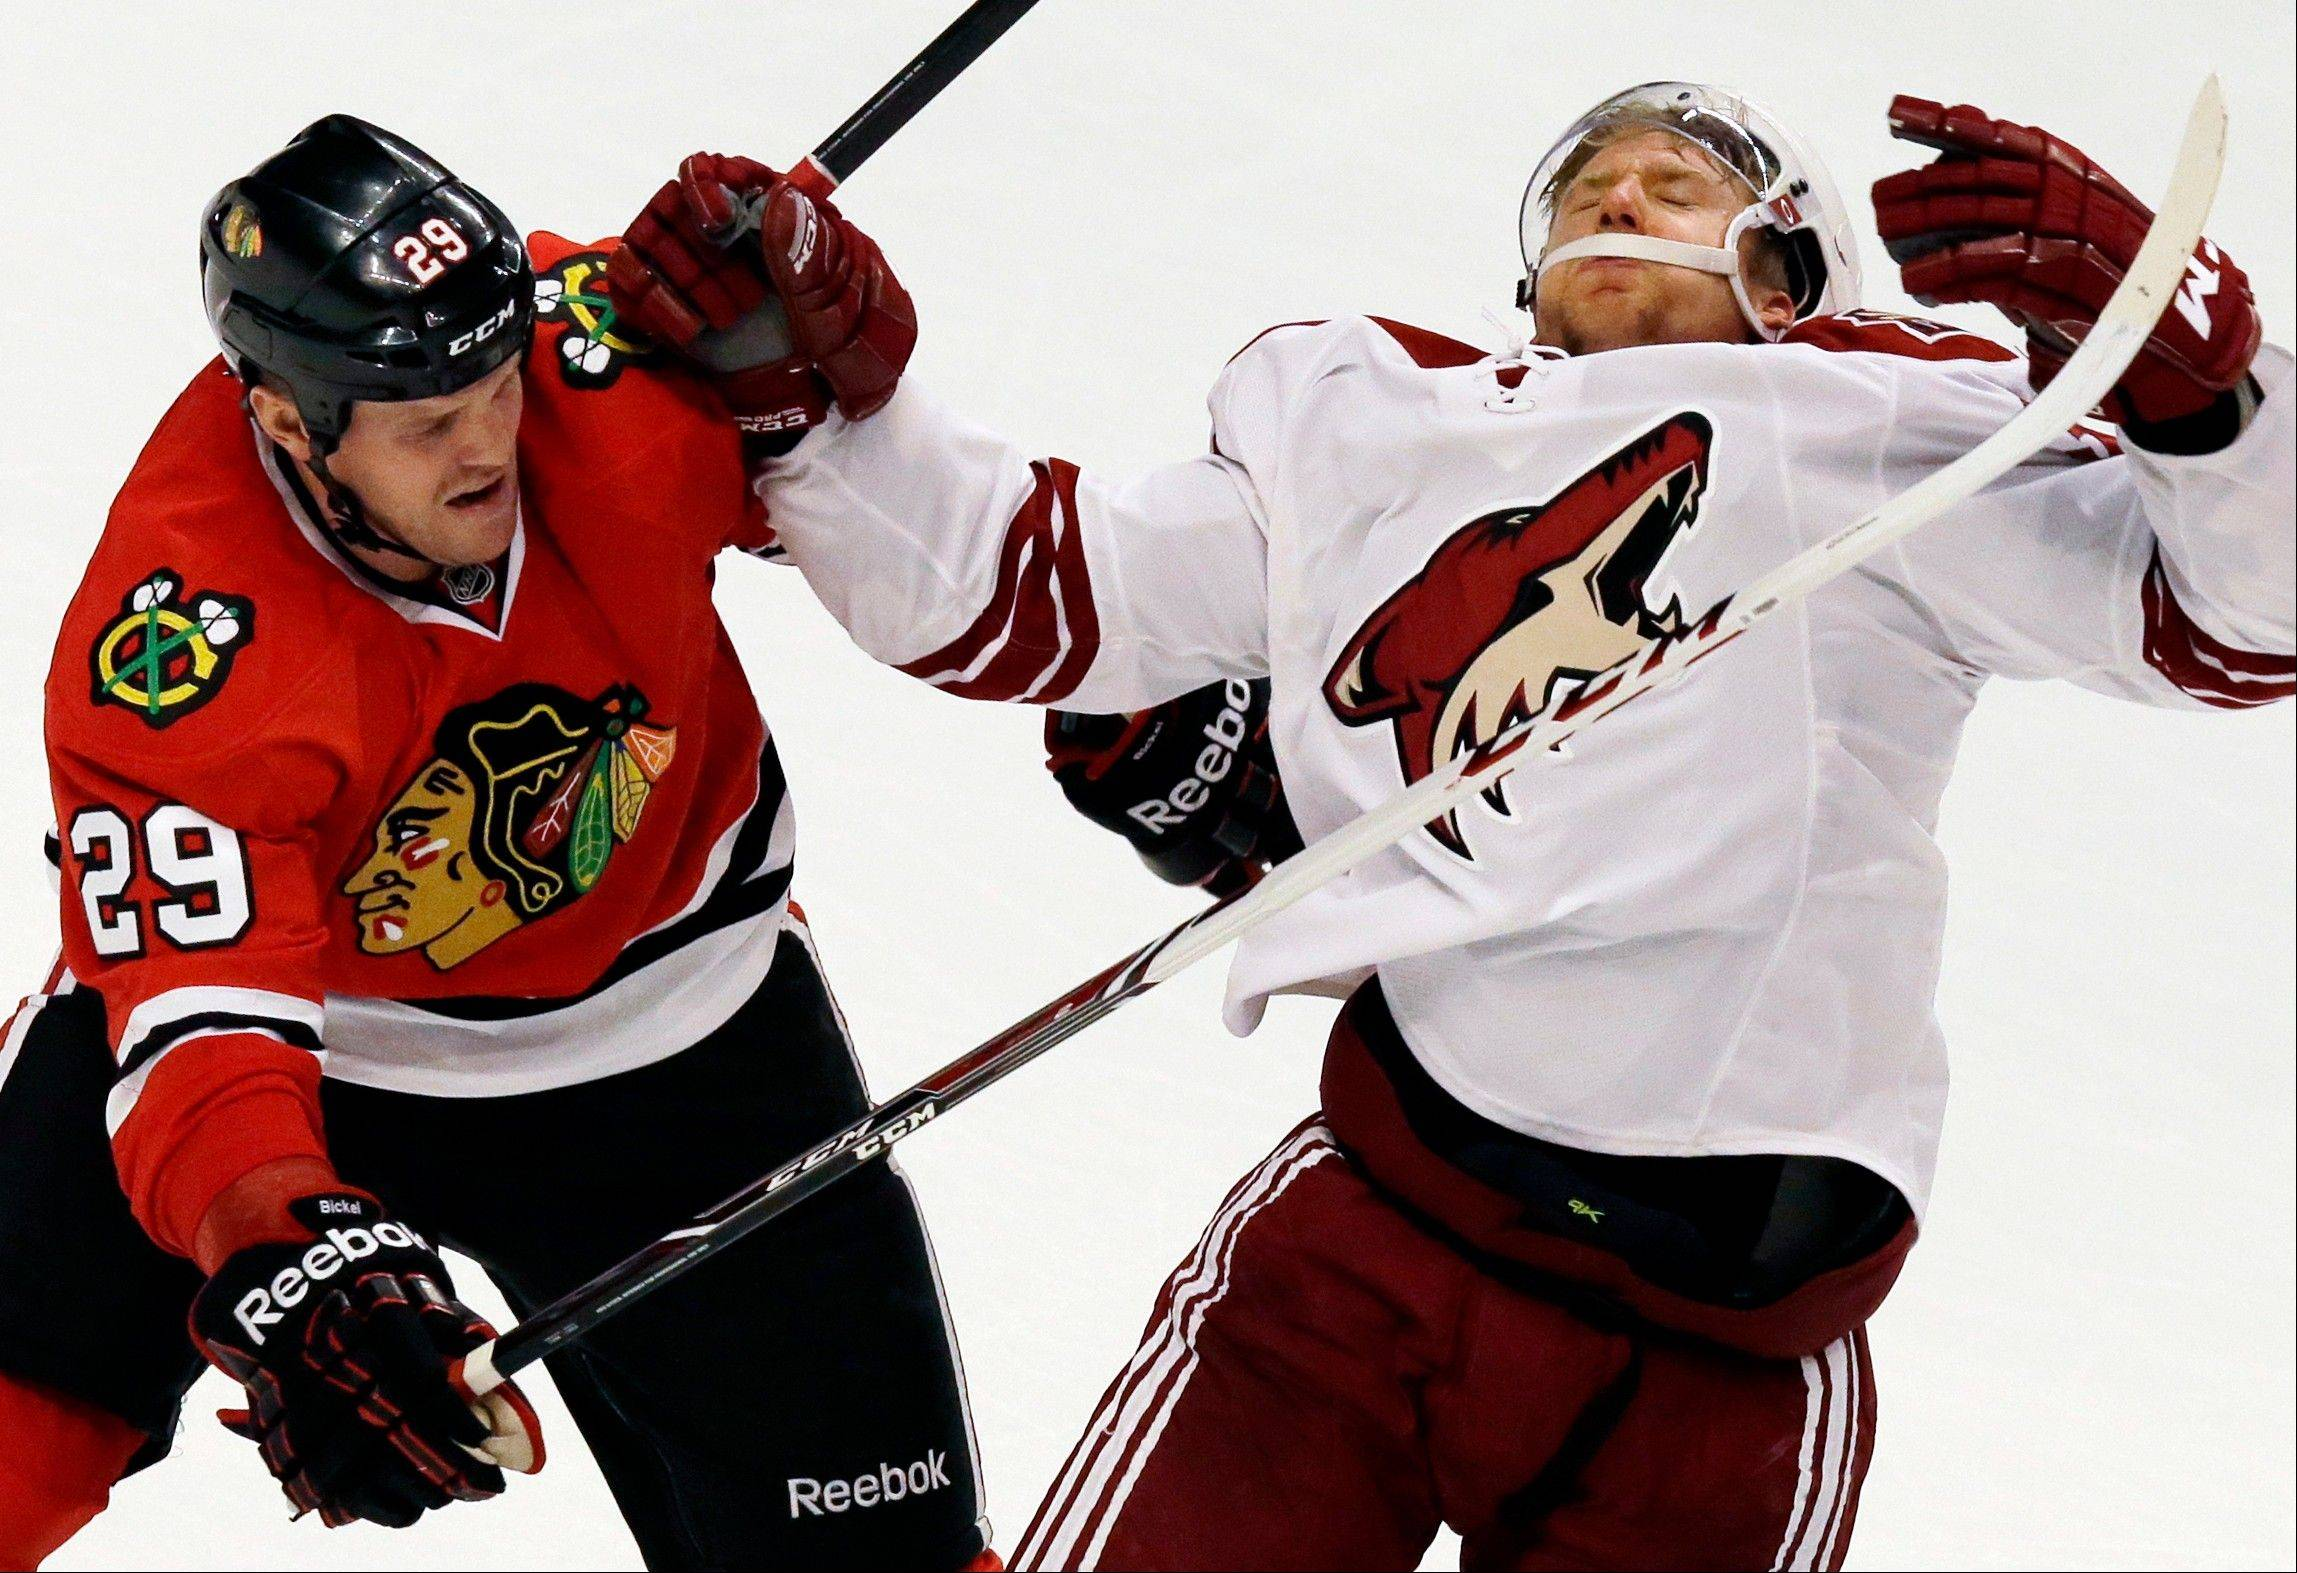 Phoenix Coyotes' Rob Klinkhammer, right, is hit by the Blackhawks' Bryan Bickell during the third period of an NHL hockey game in Chicago, Thursday, Nov. 14, 2013. The Blackhawks won 5-4.